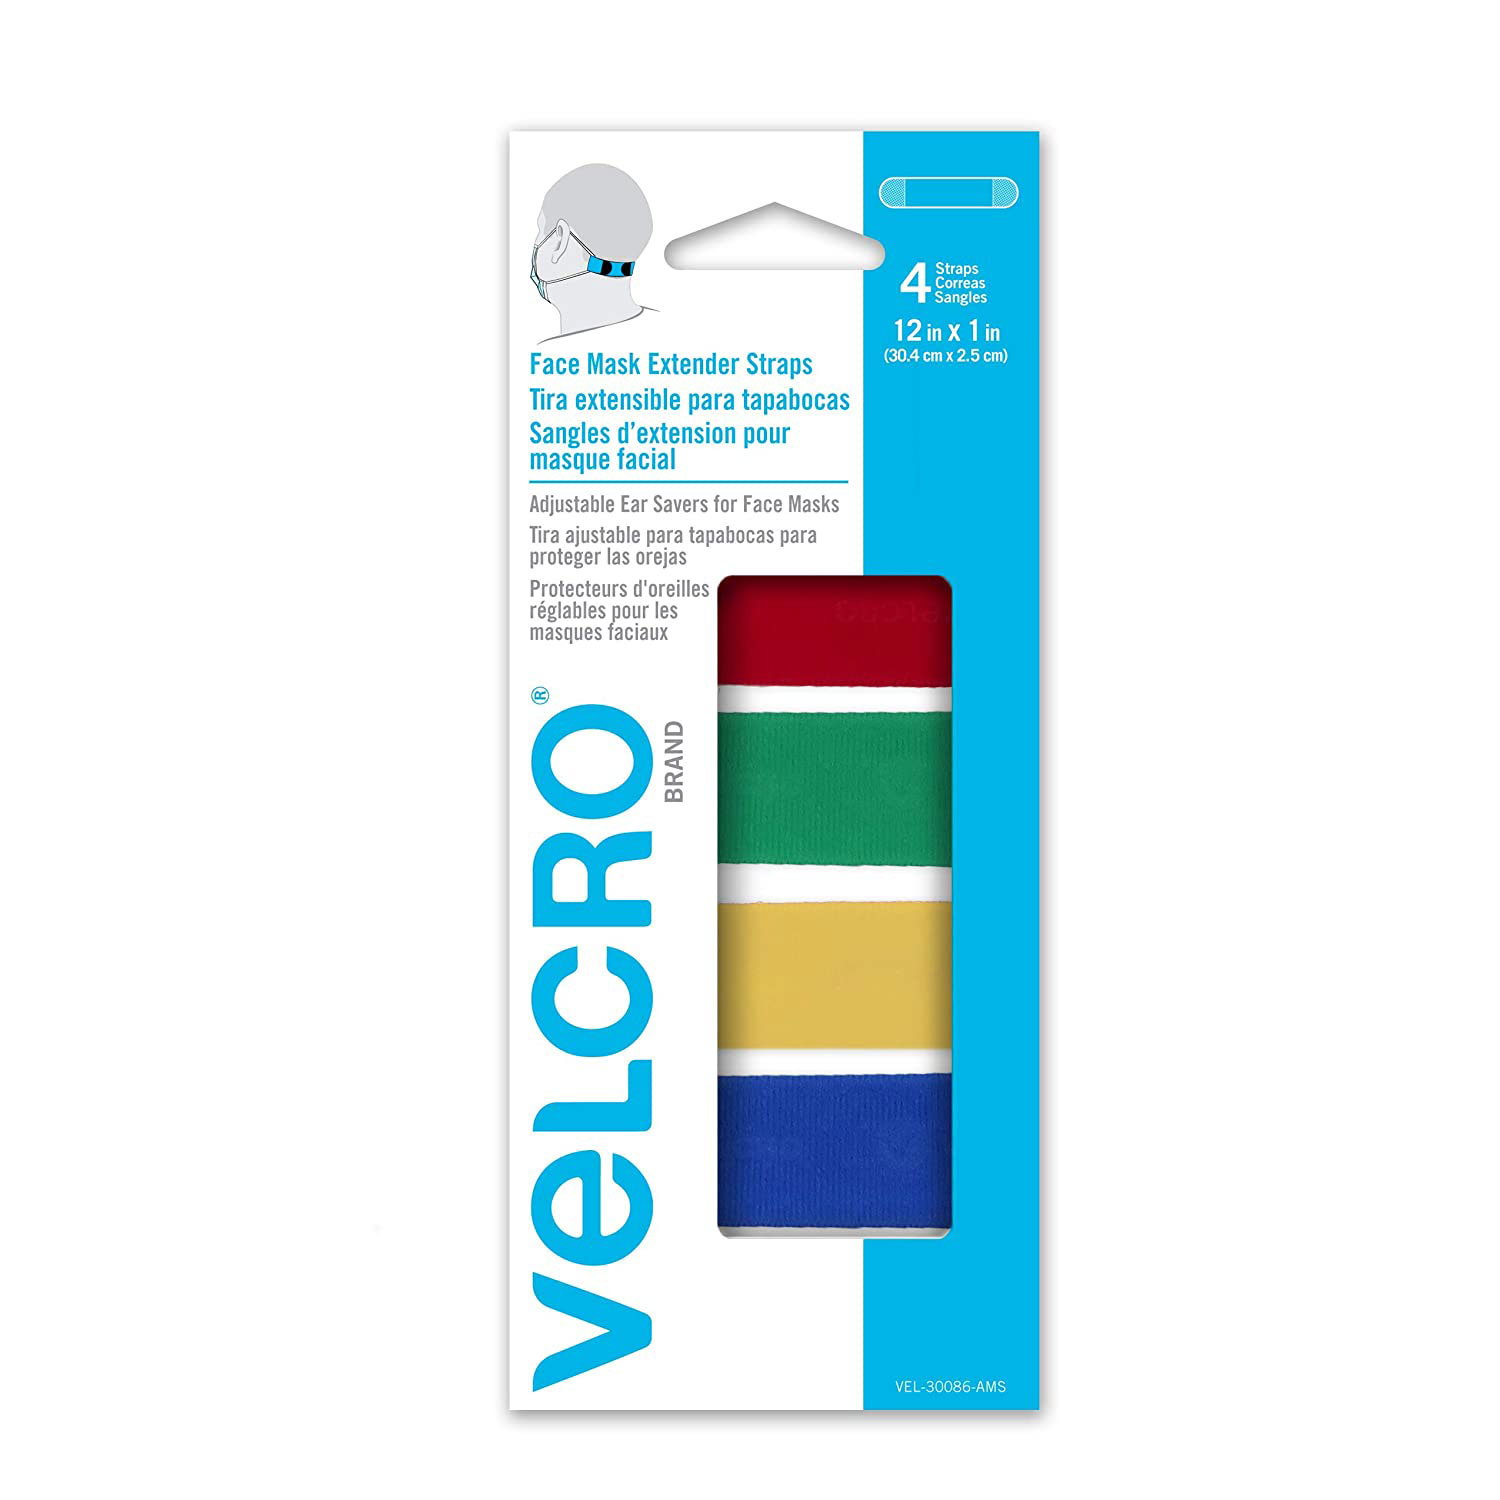 6 Clever Items (1/8/21) - Velcro Brand Face Mask Extender Straps